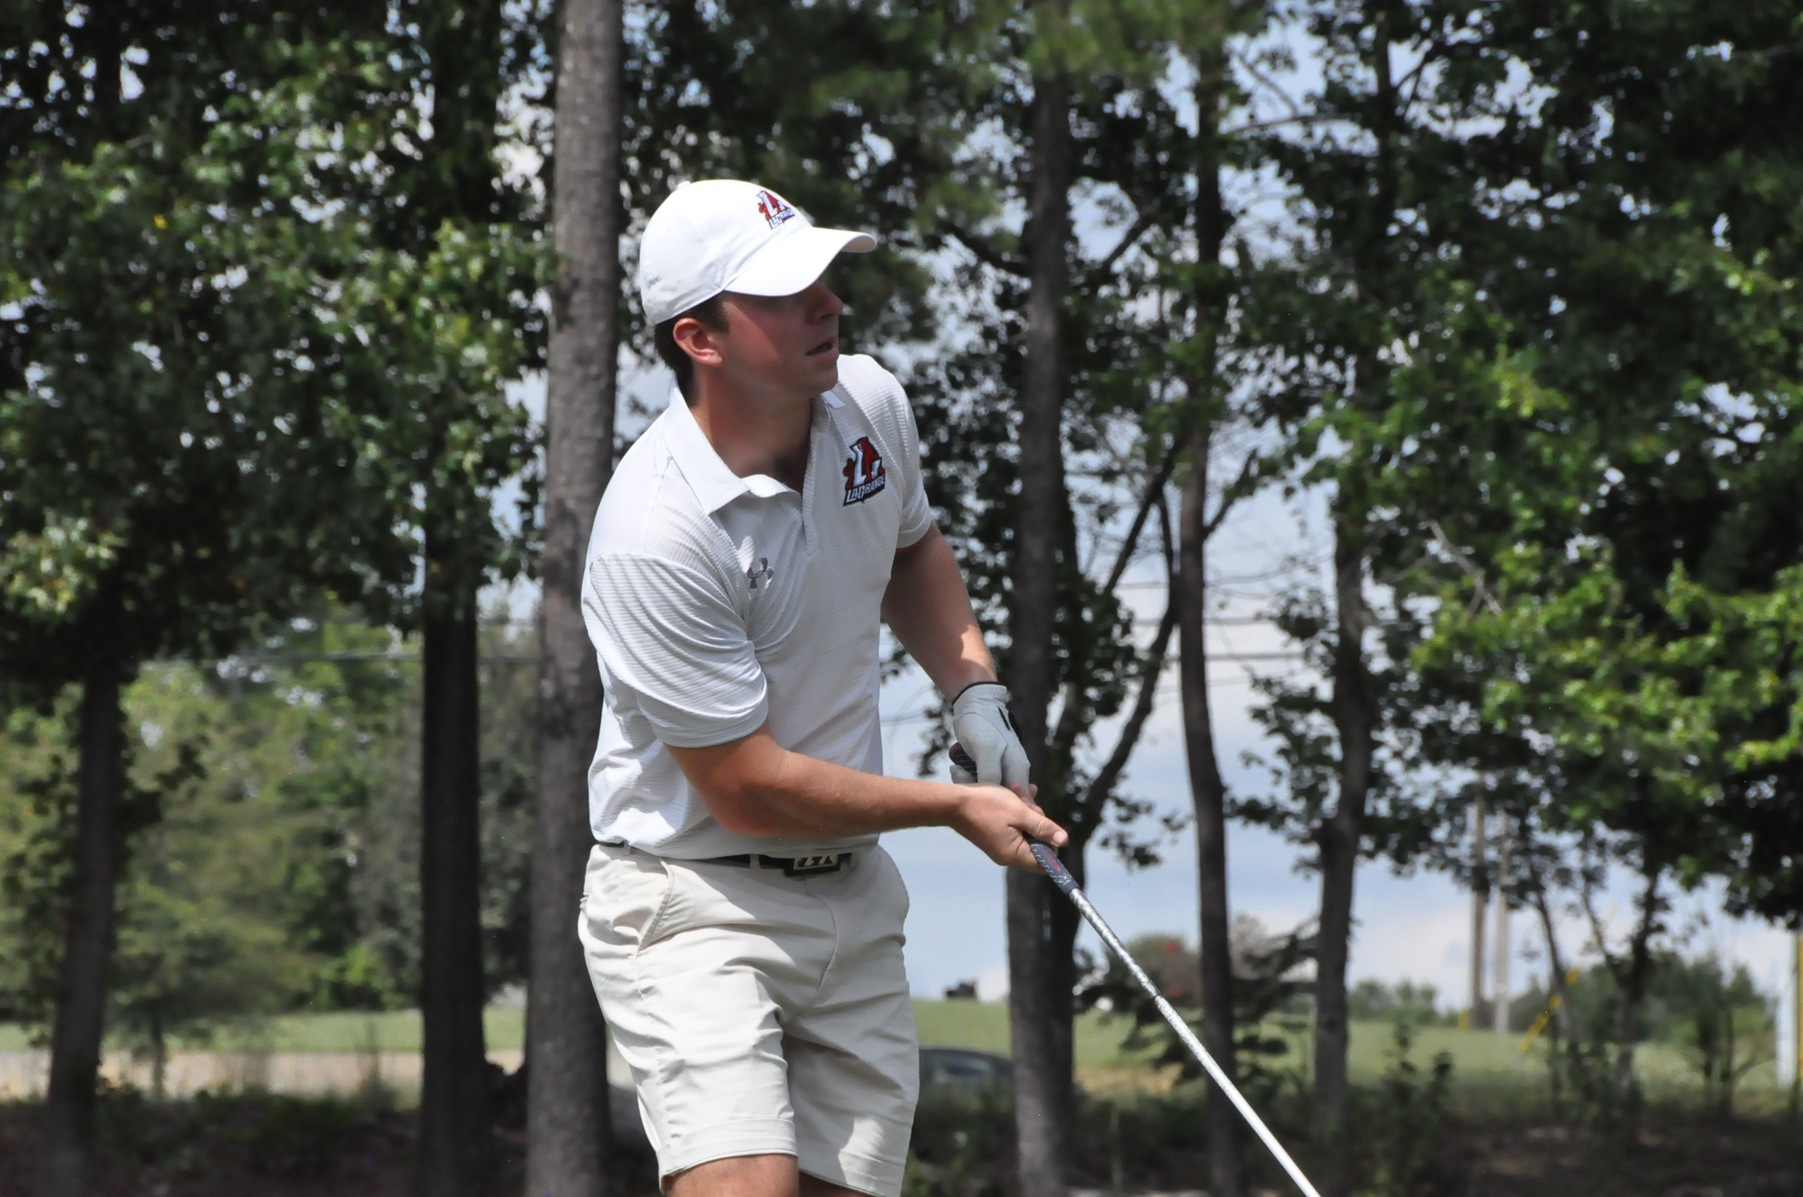 Golf: Ben Womack tied for second after first round of Golfweek Fall Invitational